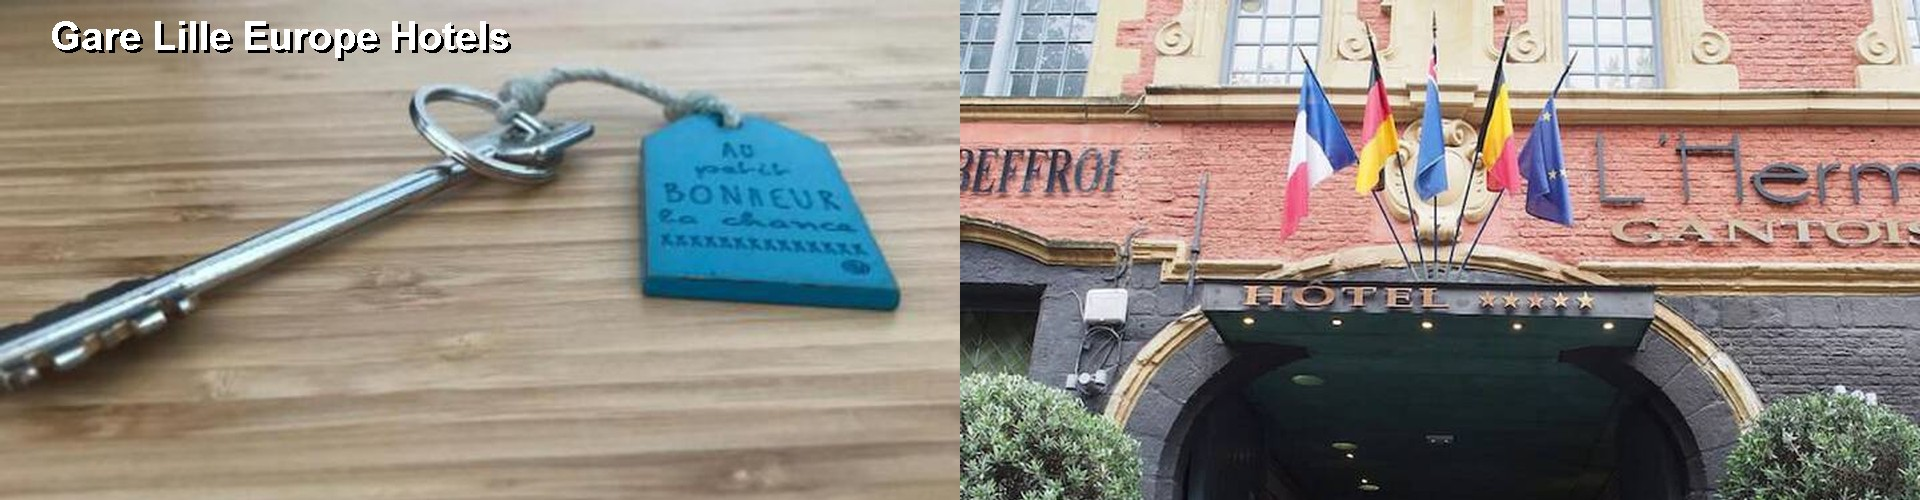 5 Best Hotels near Gare Lille Europe